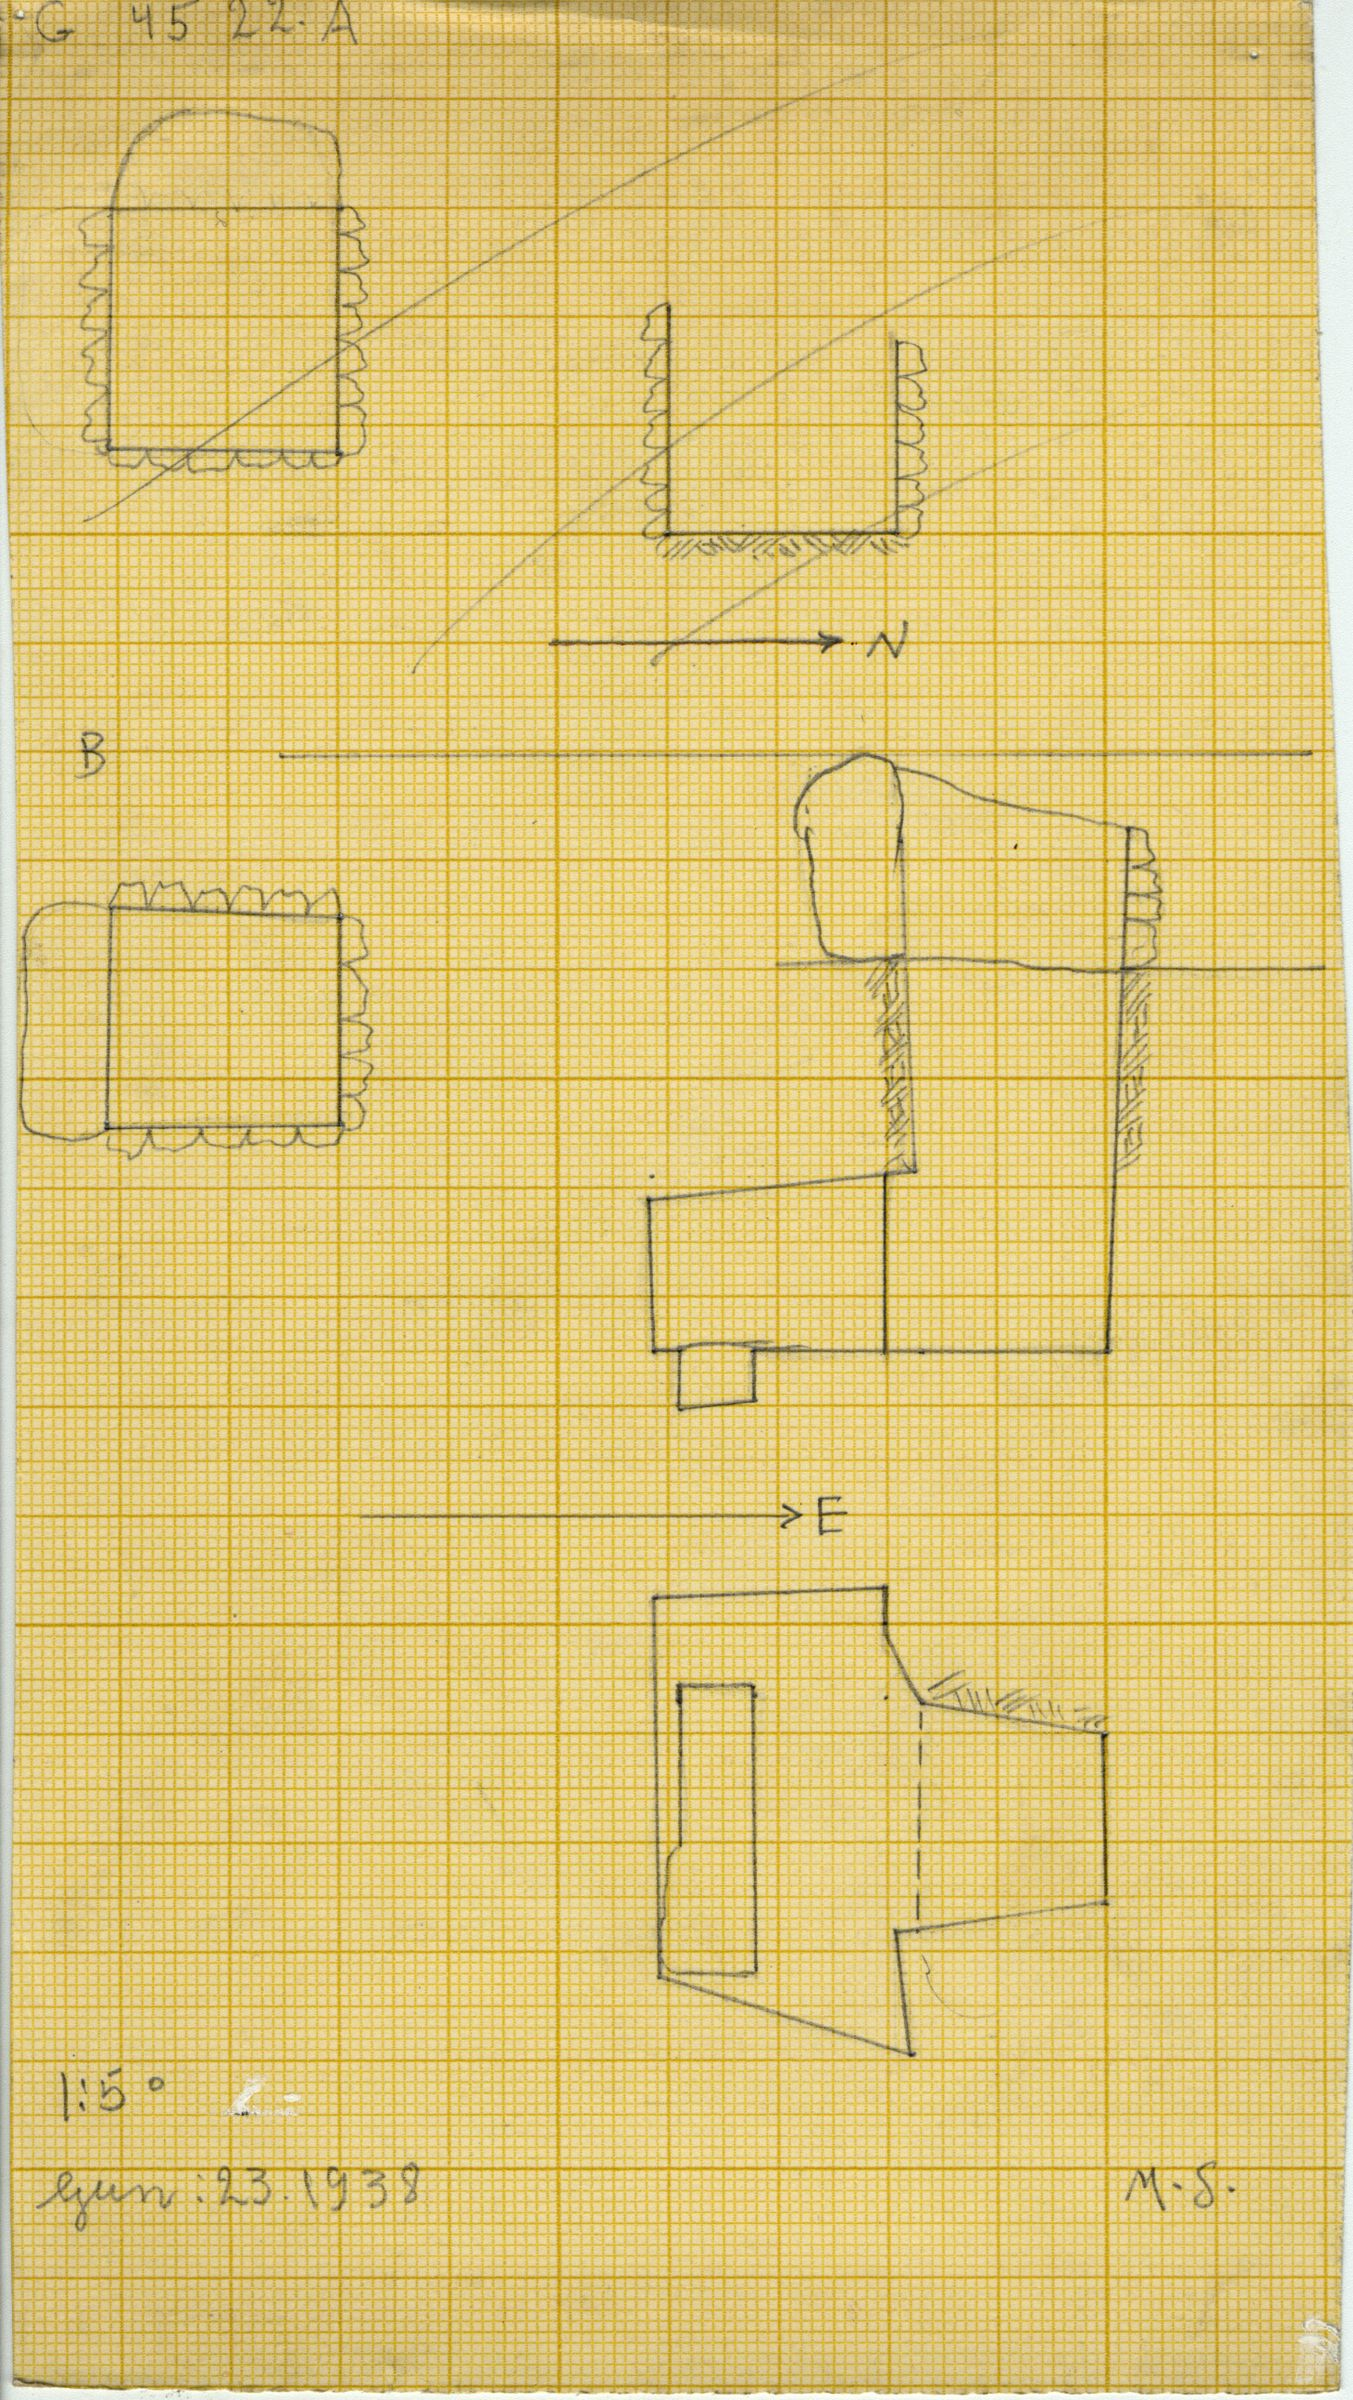 Maps and plans: G 4522, Shaft A and B